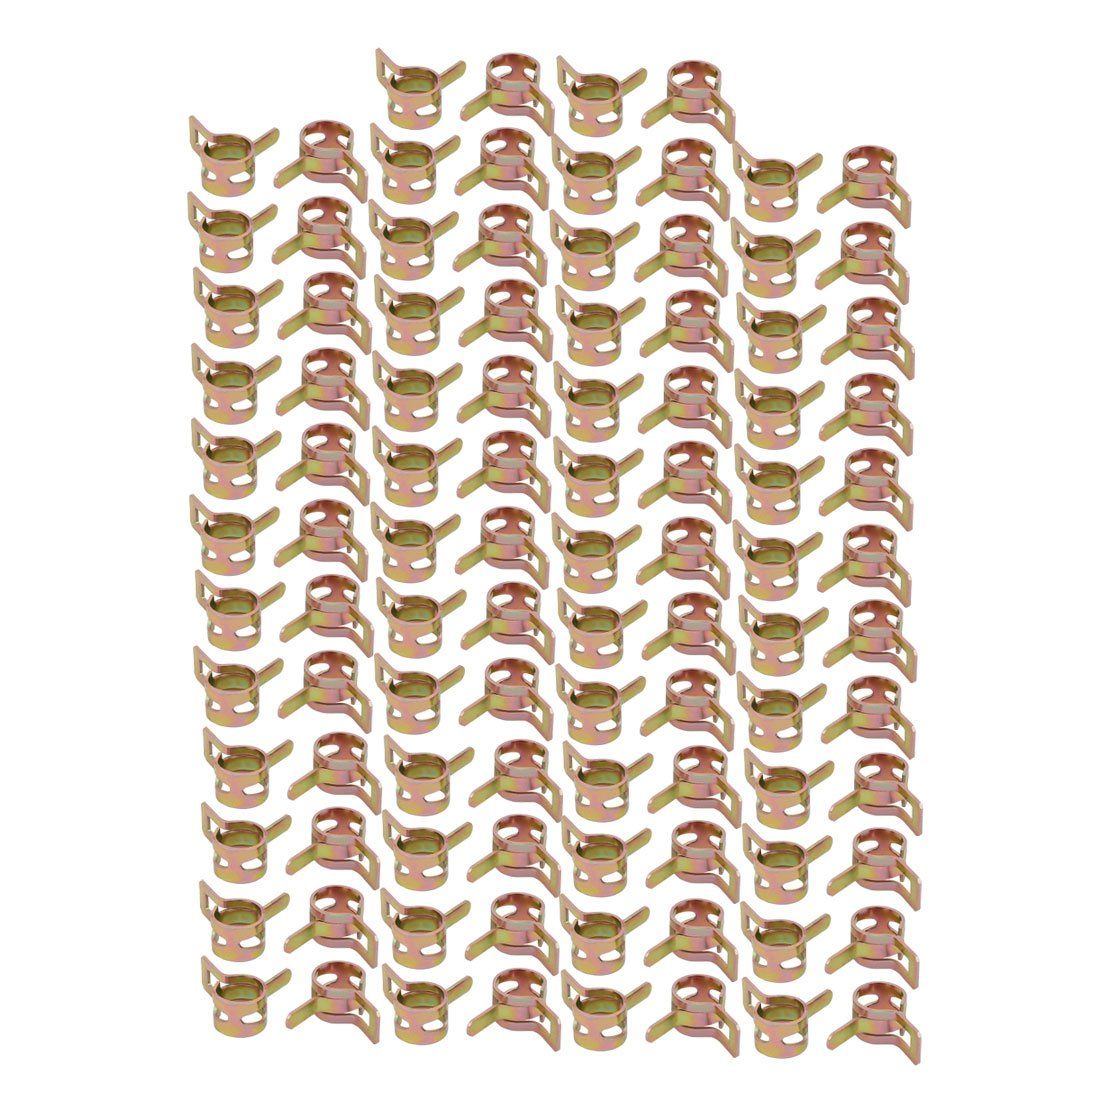 uxcell 100 Pcs 9mm Spring Band Type Action Fuel Hose Pipe Air Clamp Bronze Tone